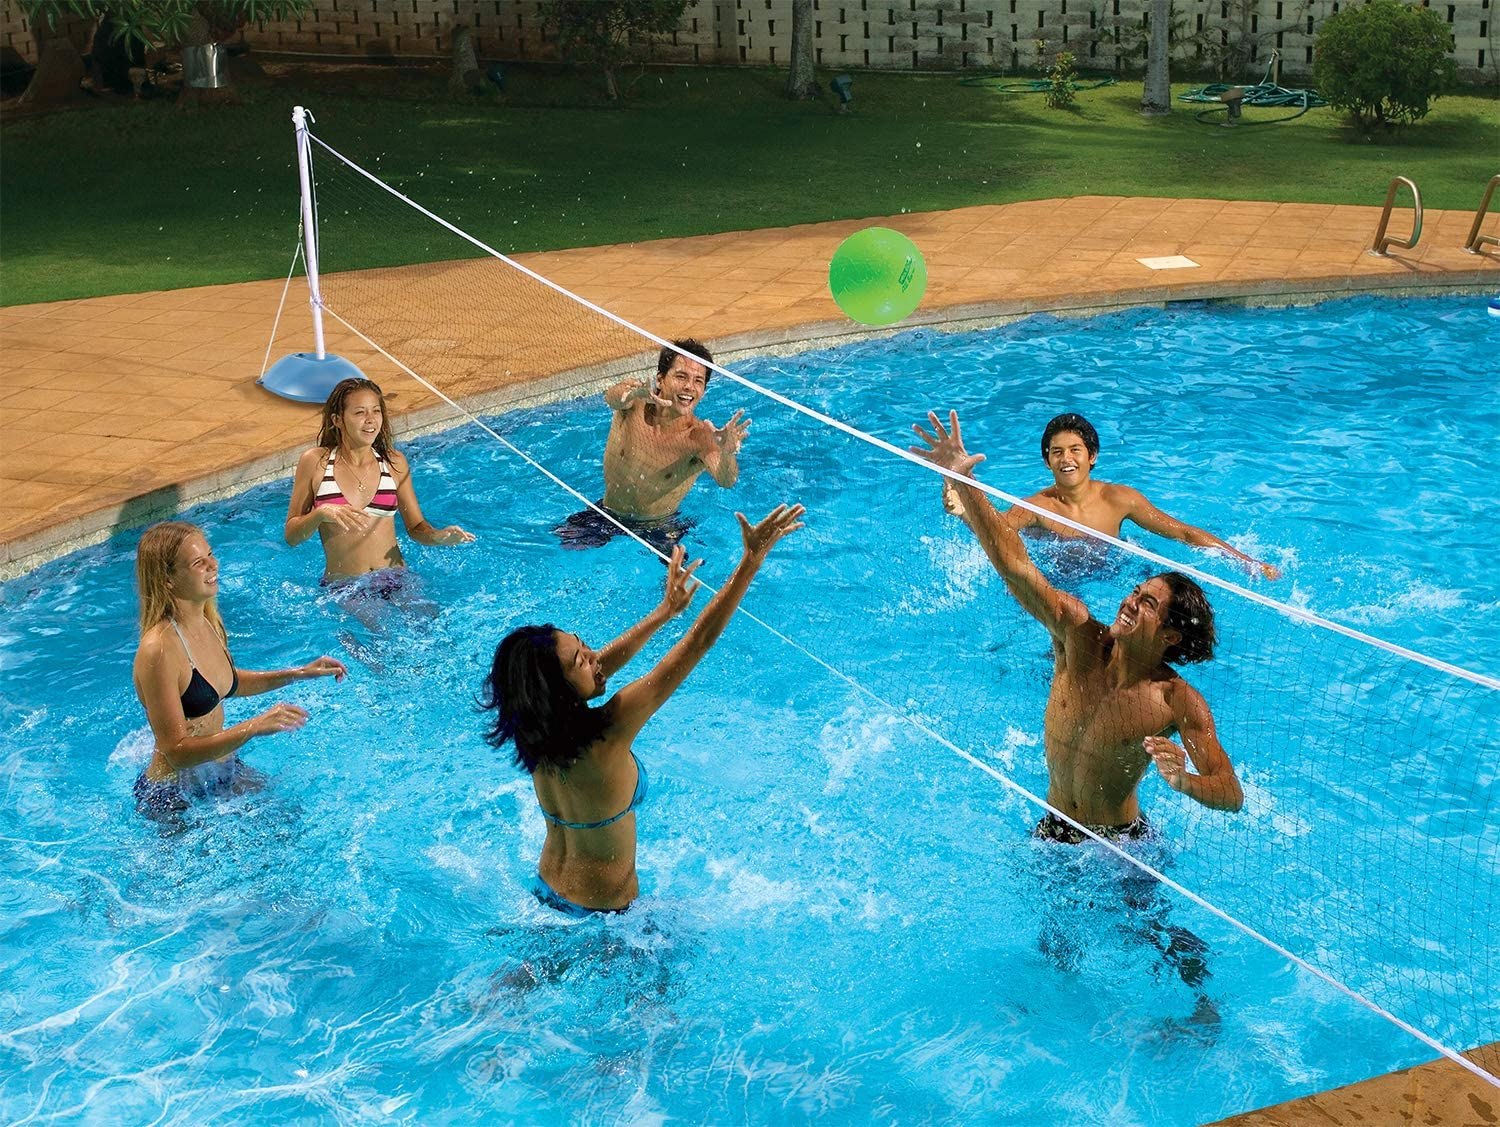 Poolmaster 72789 Across Pool Volleyball Game Basketball Volleyball Sets Amazon Canada